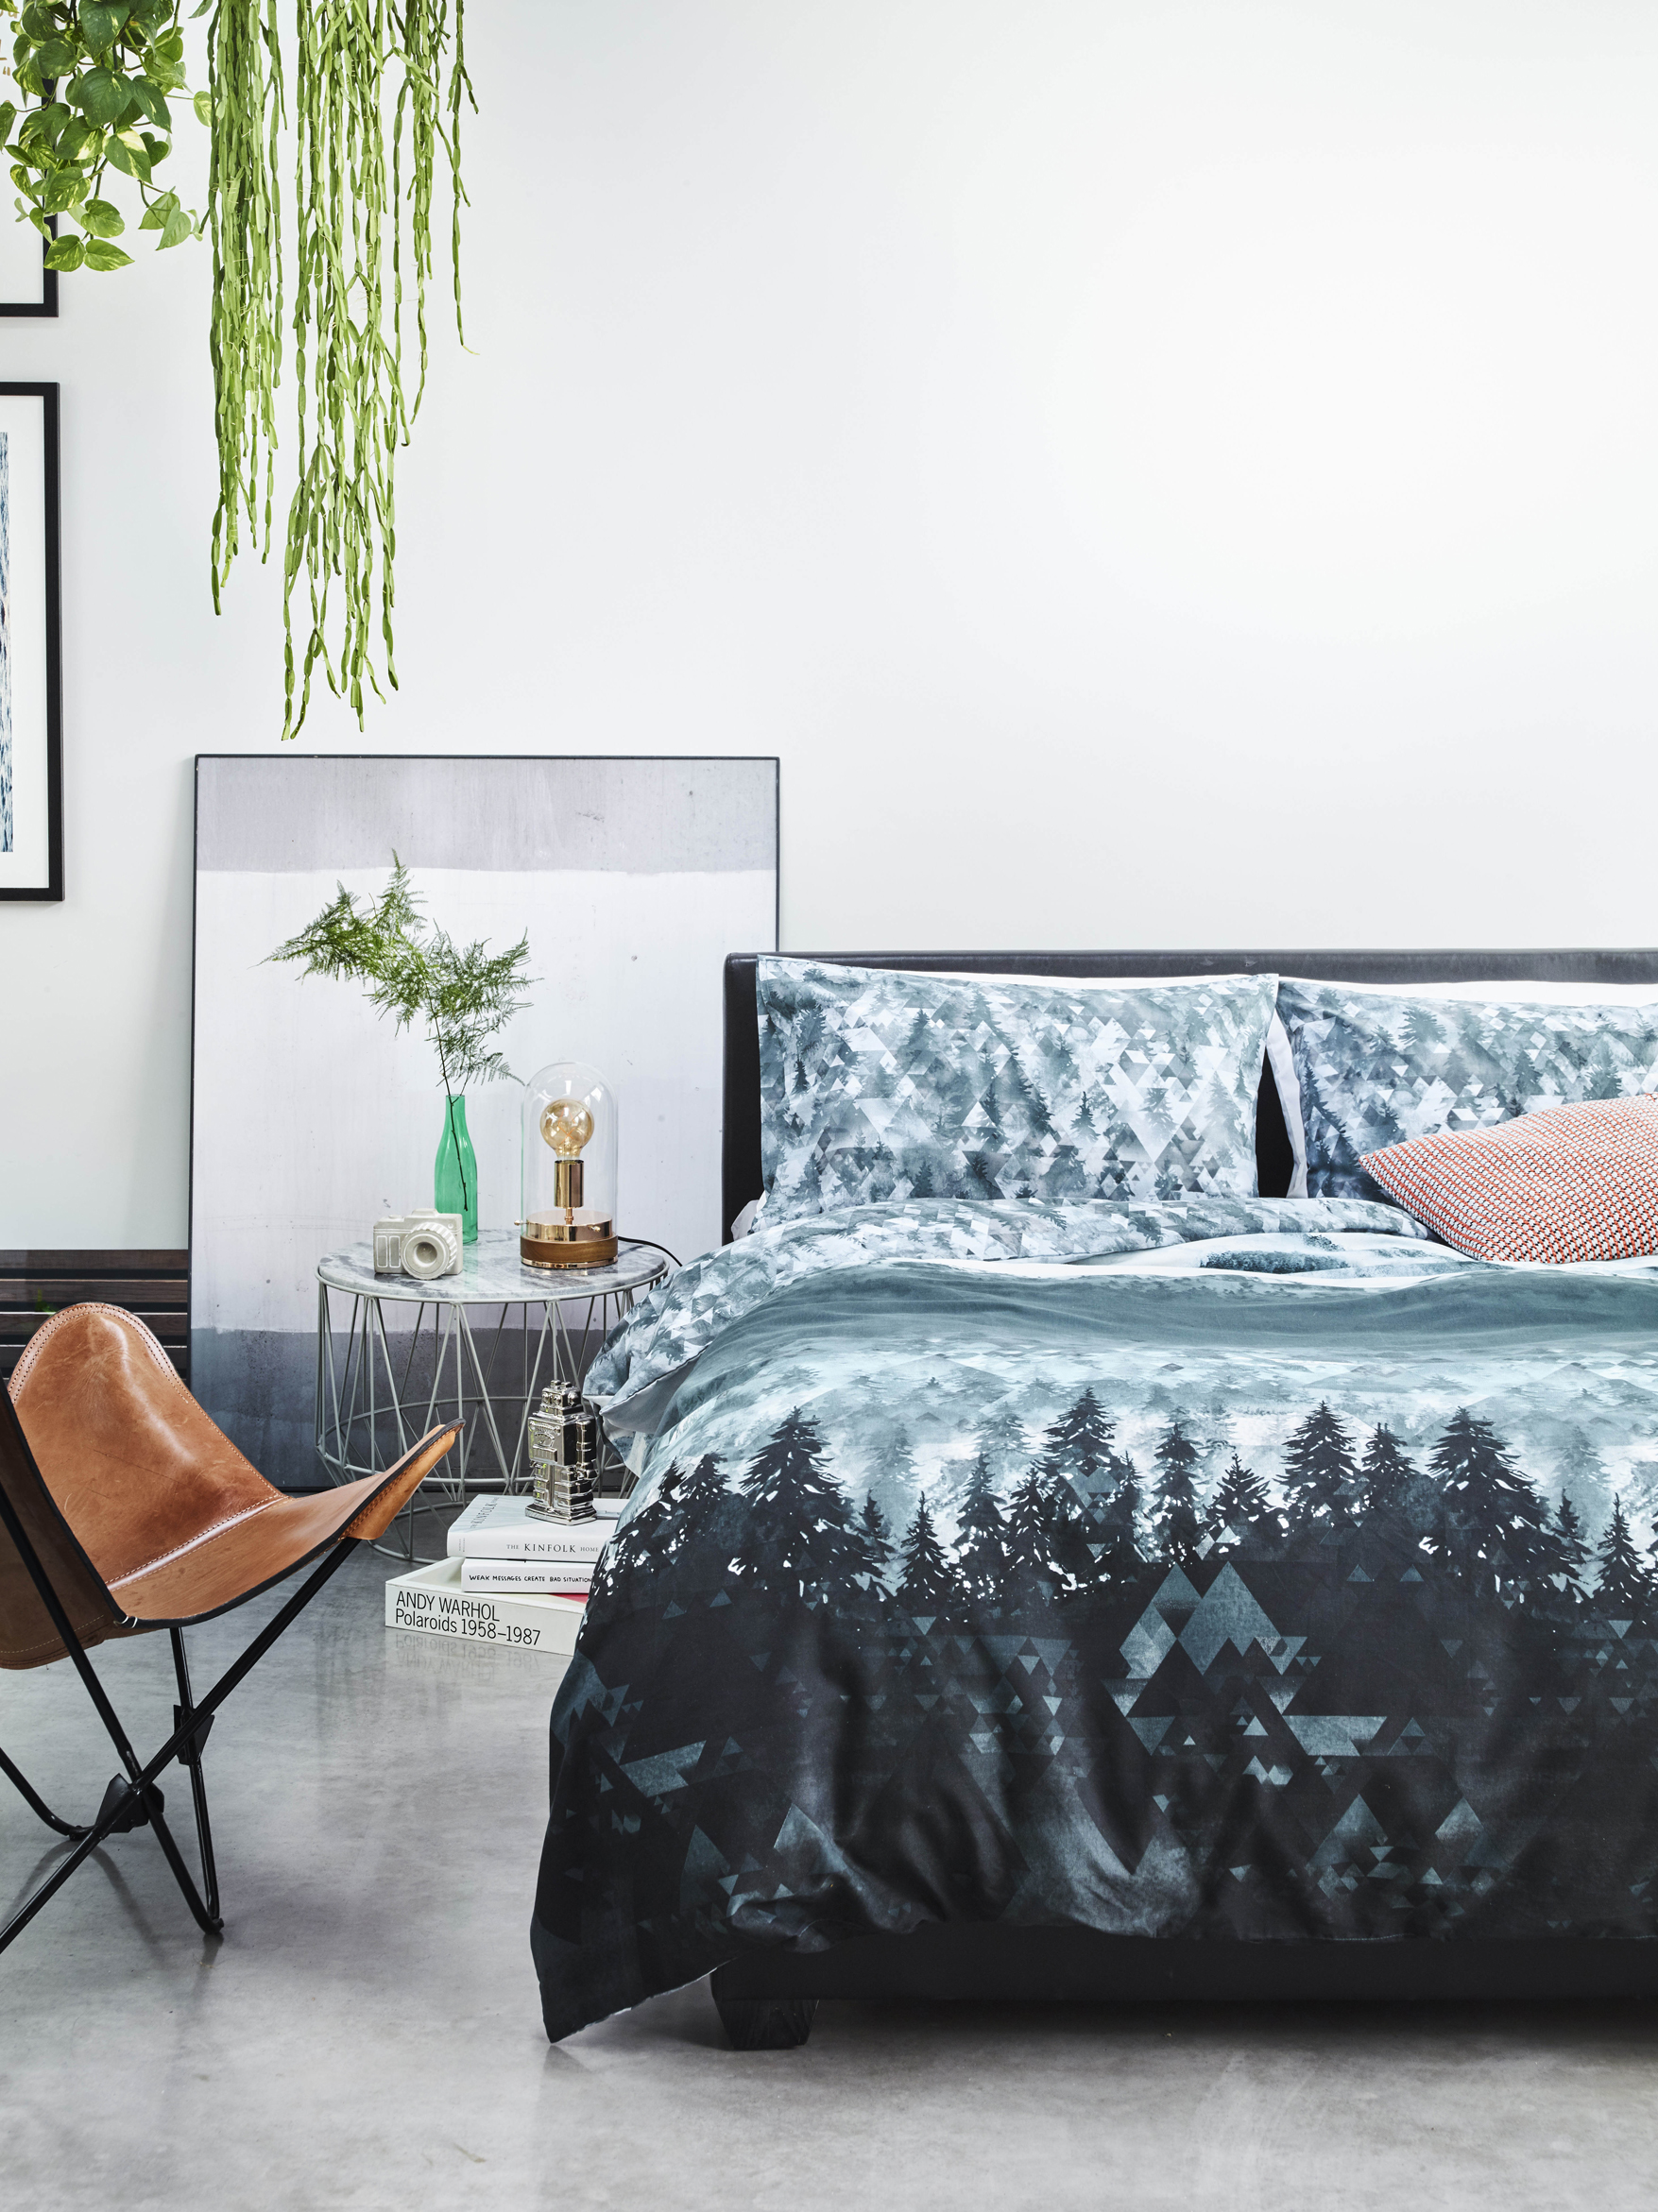 Try George Home At Asda For Bargain Finds Camera Ornament Copper Effect Bell Jar Lamp Grey Oned Double Bed Geometric Textured Cushion